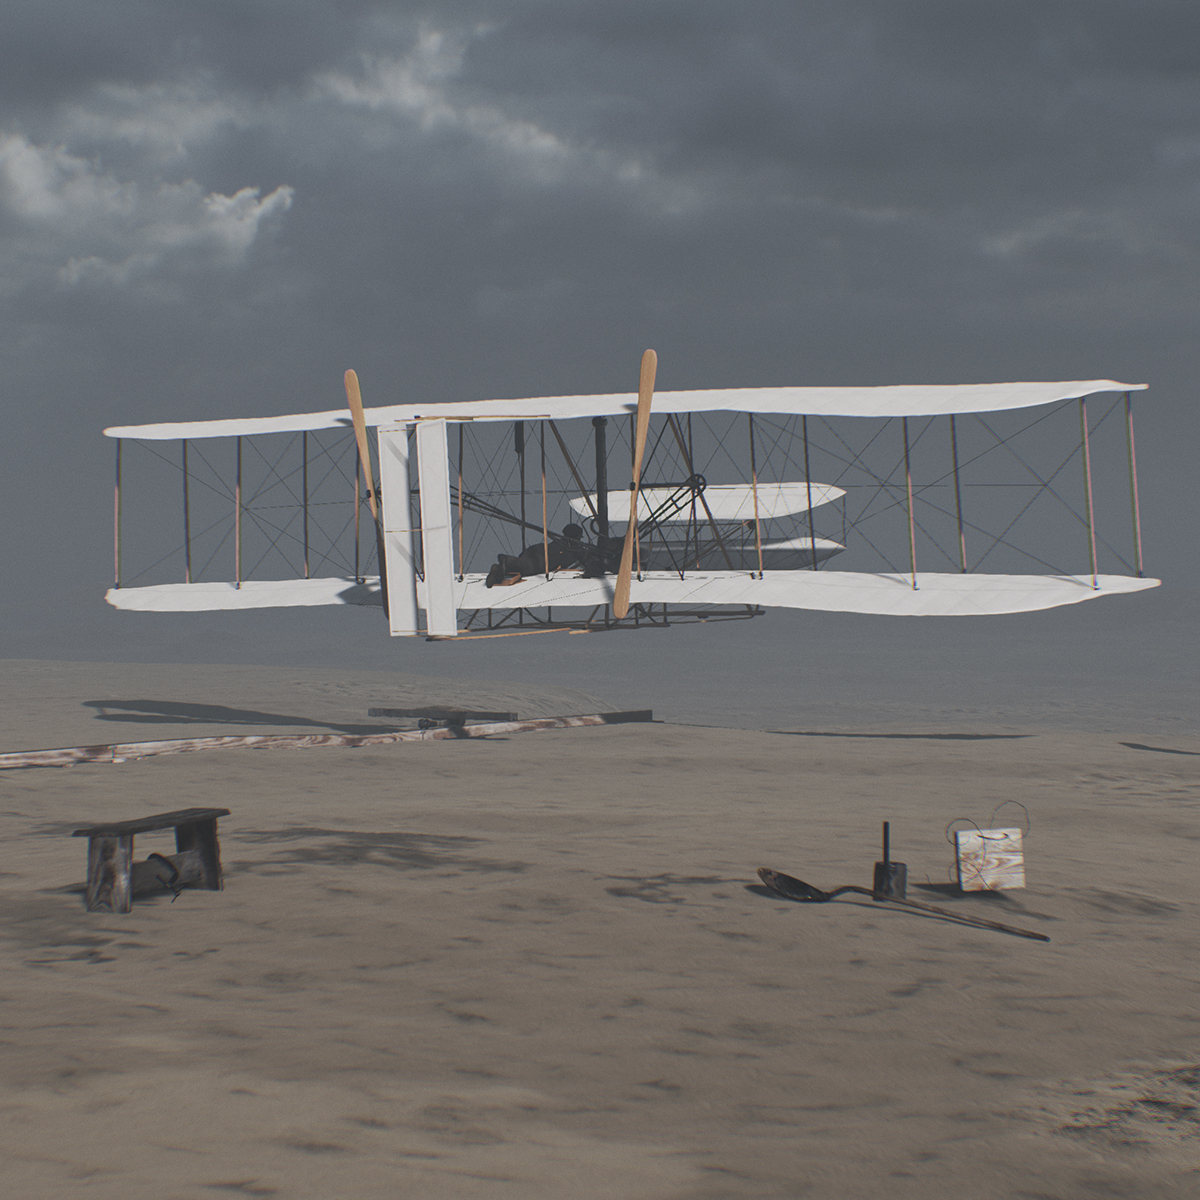 Wright Brothers Flight intended for cgo studios